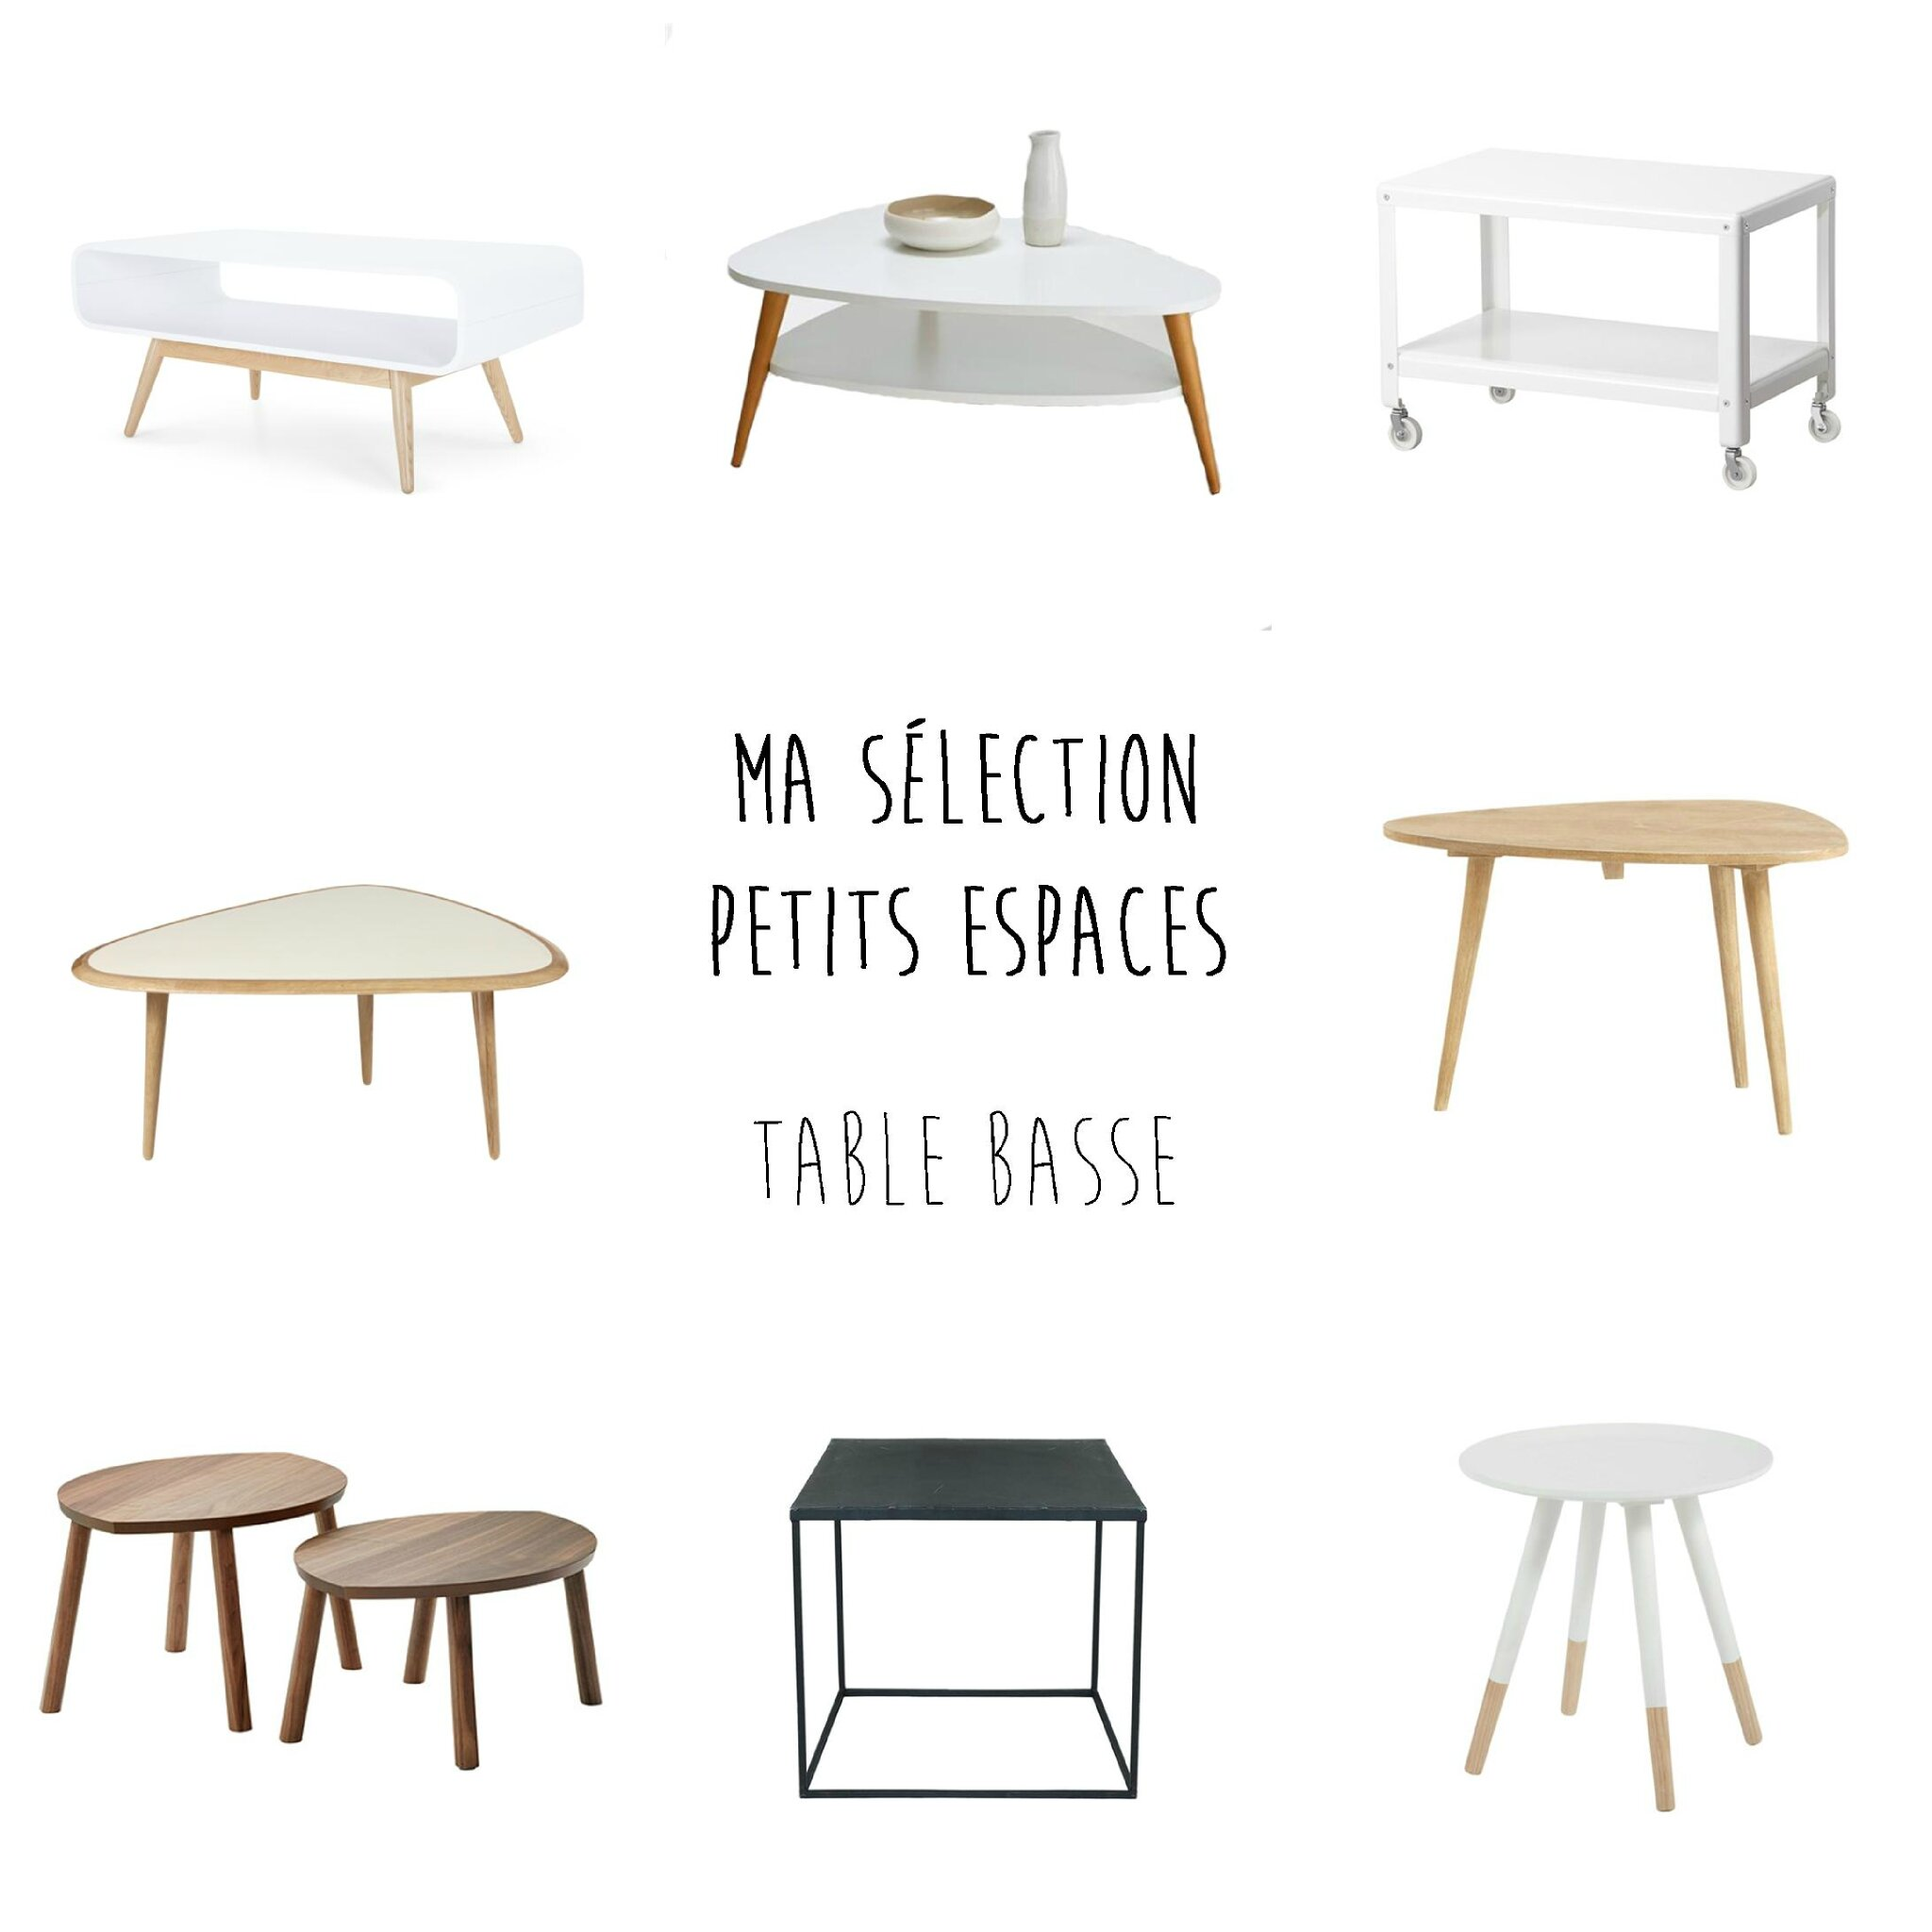 Un petit salon comment trouver la table basse id ale for Petite table basse de salon